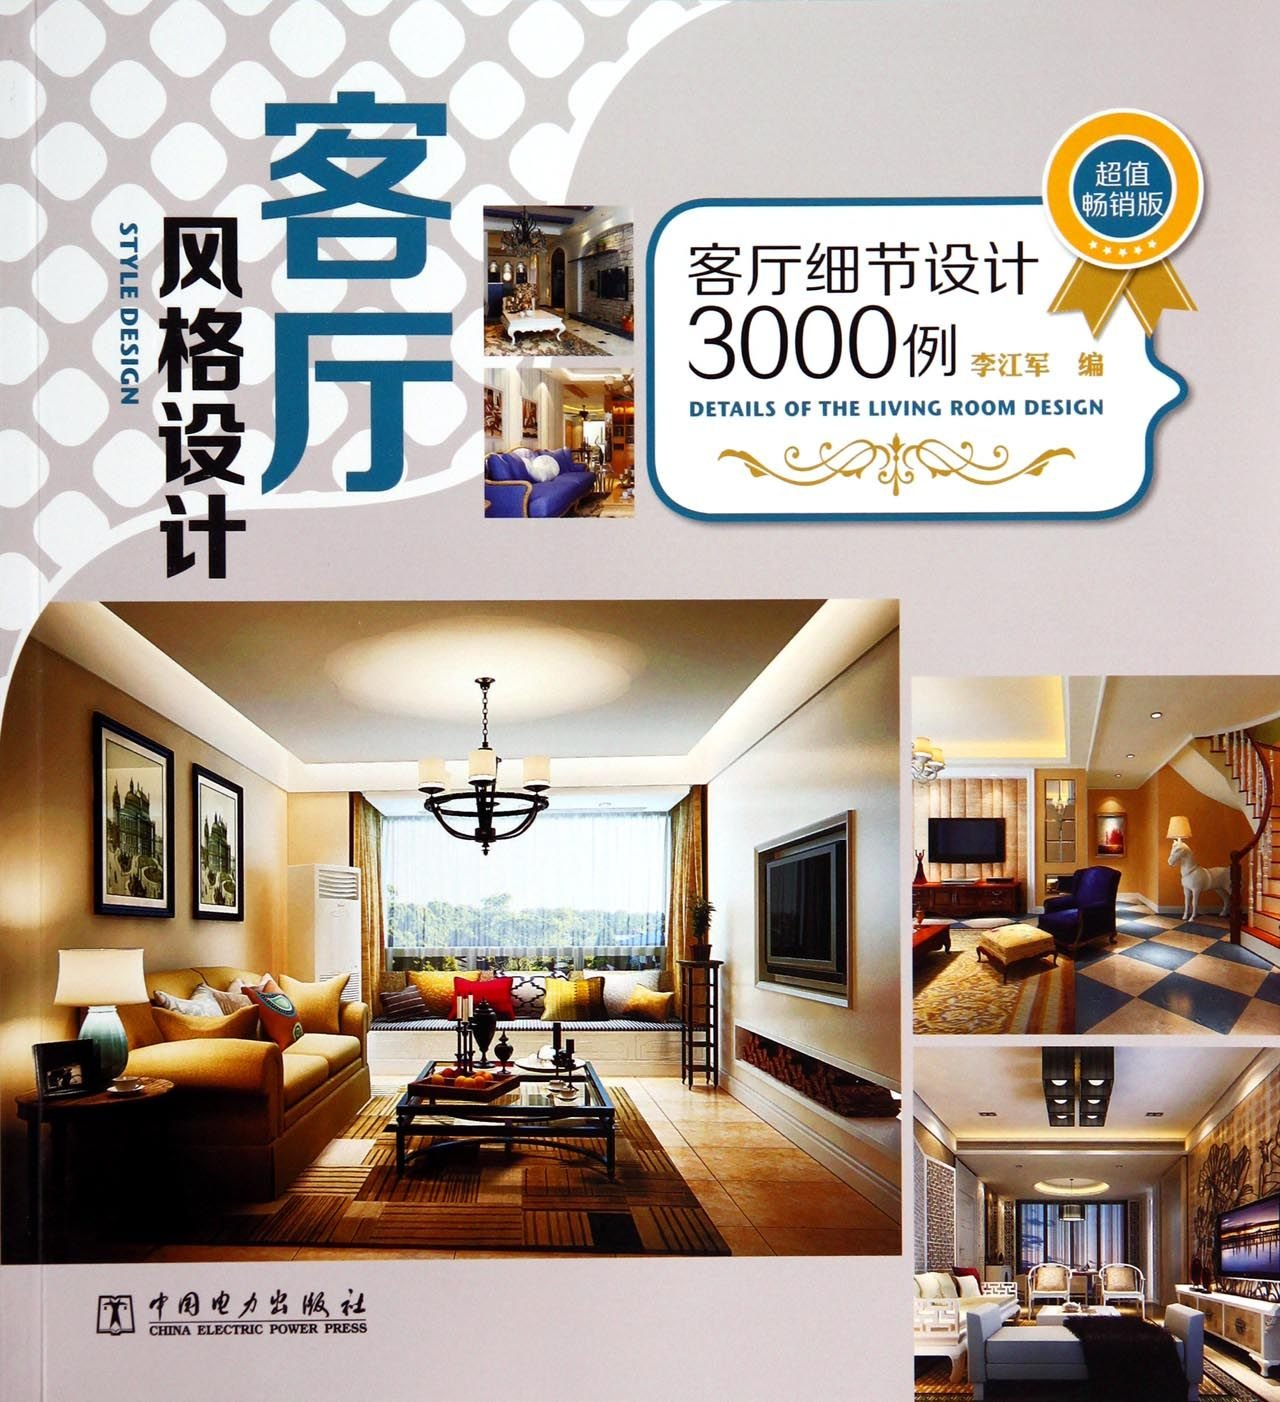 Living Room Detail Design 3000 Cases: The Living Room Style(Chinese  Edition) (Chinese) Paperback U2013 1 Jun 2014